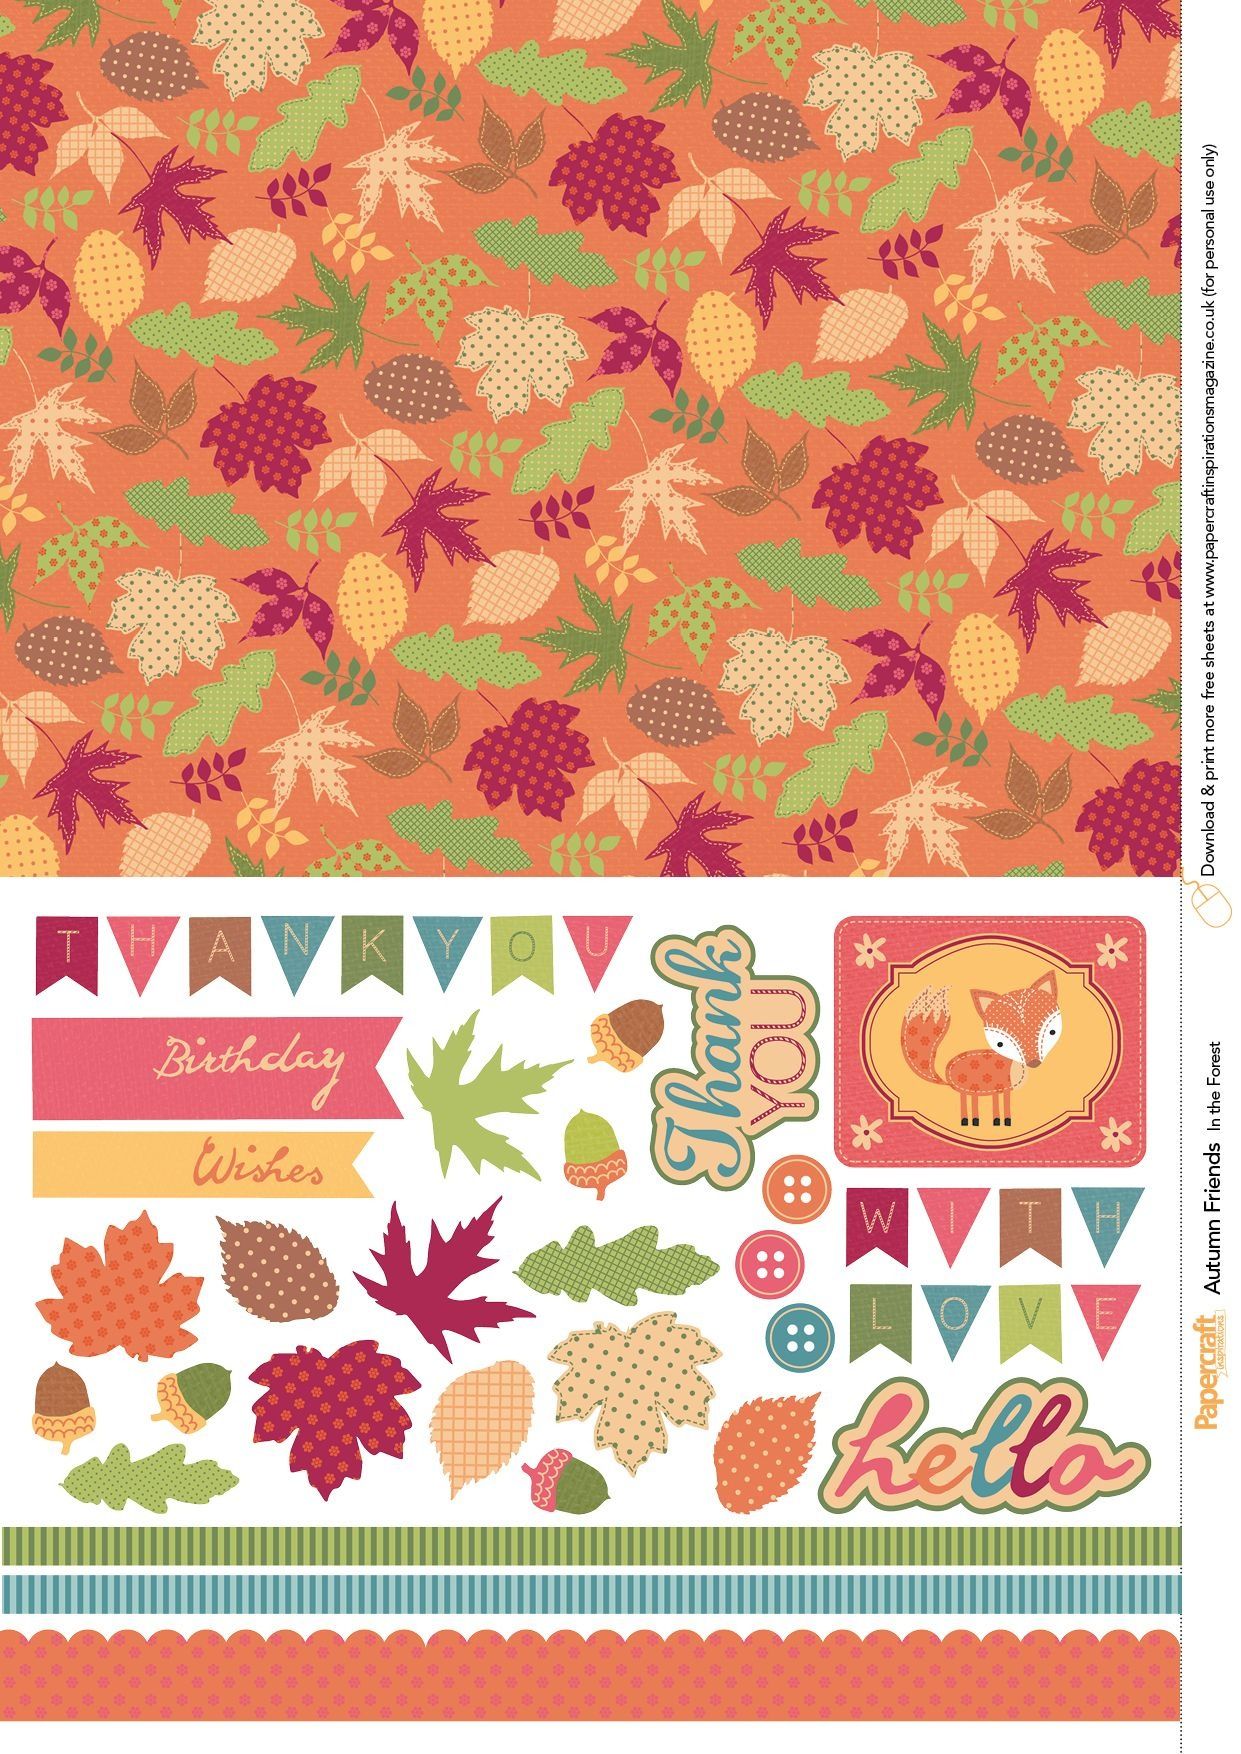 Autumn Friends Free Printables From Papercraft Inspirations Issue - Free Printable Autumn Paper